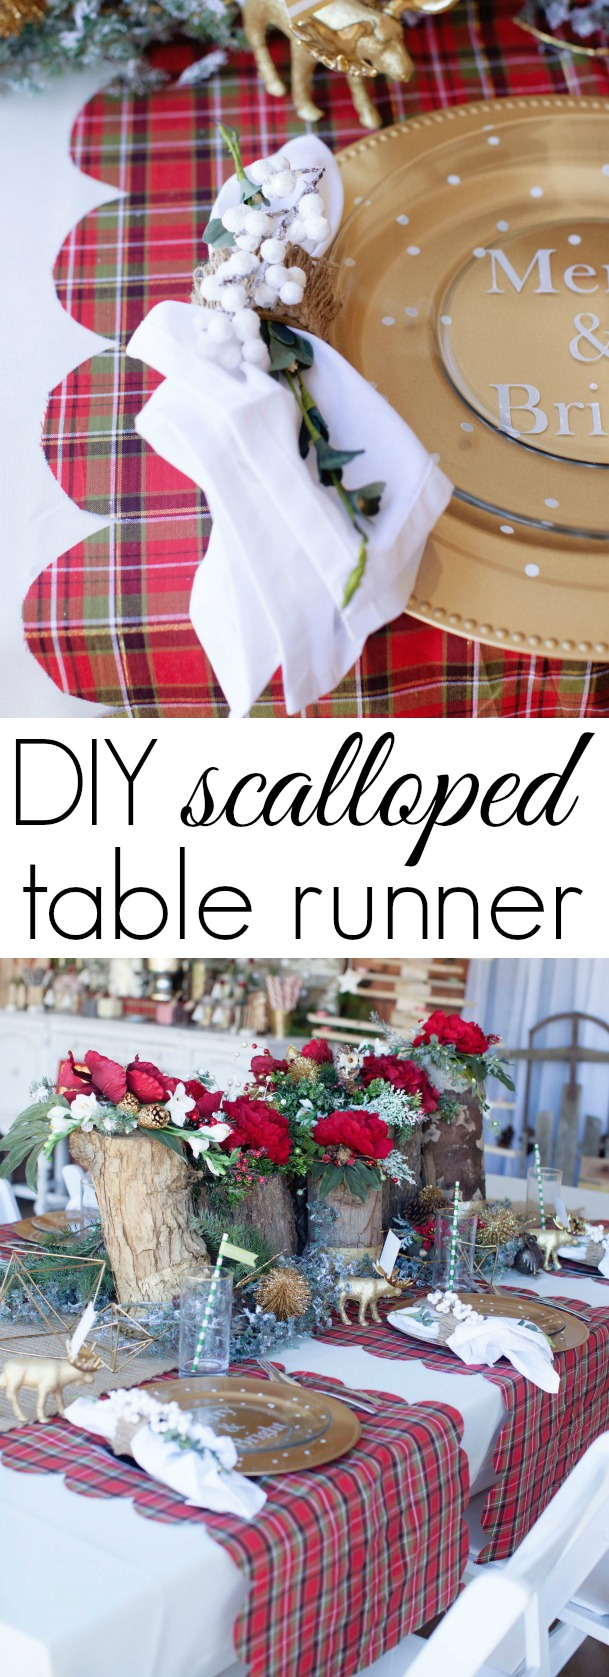 DIY Scalloped Table Runner